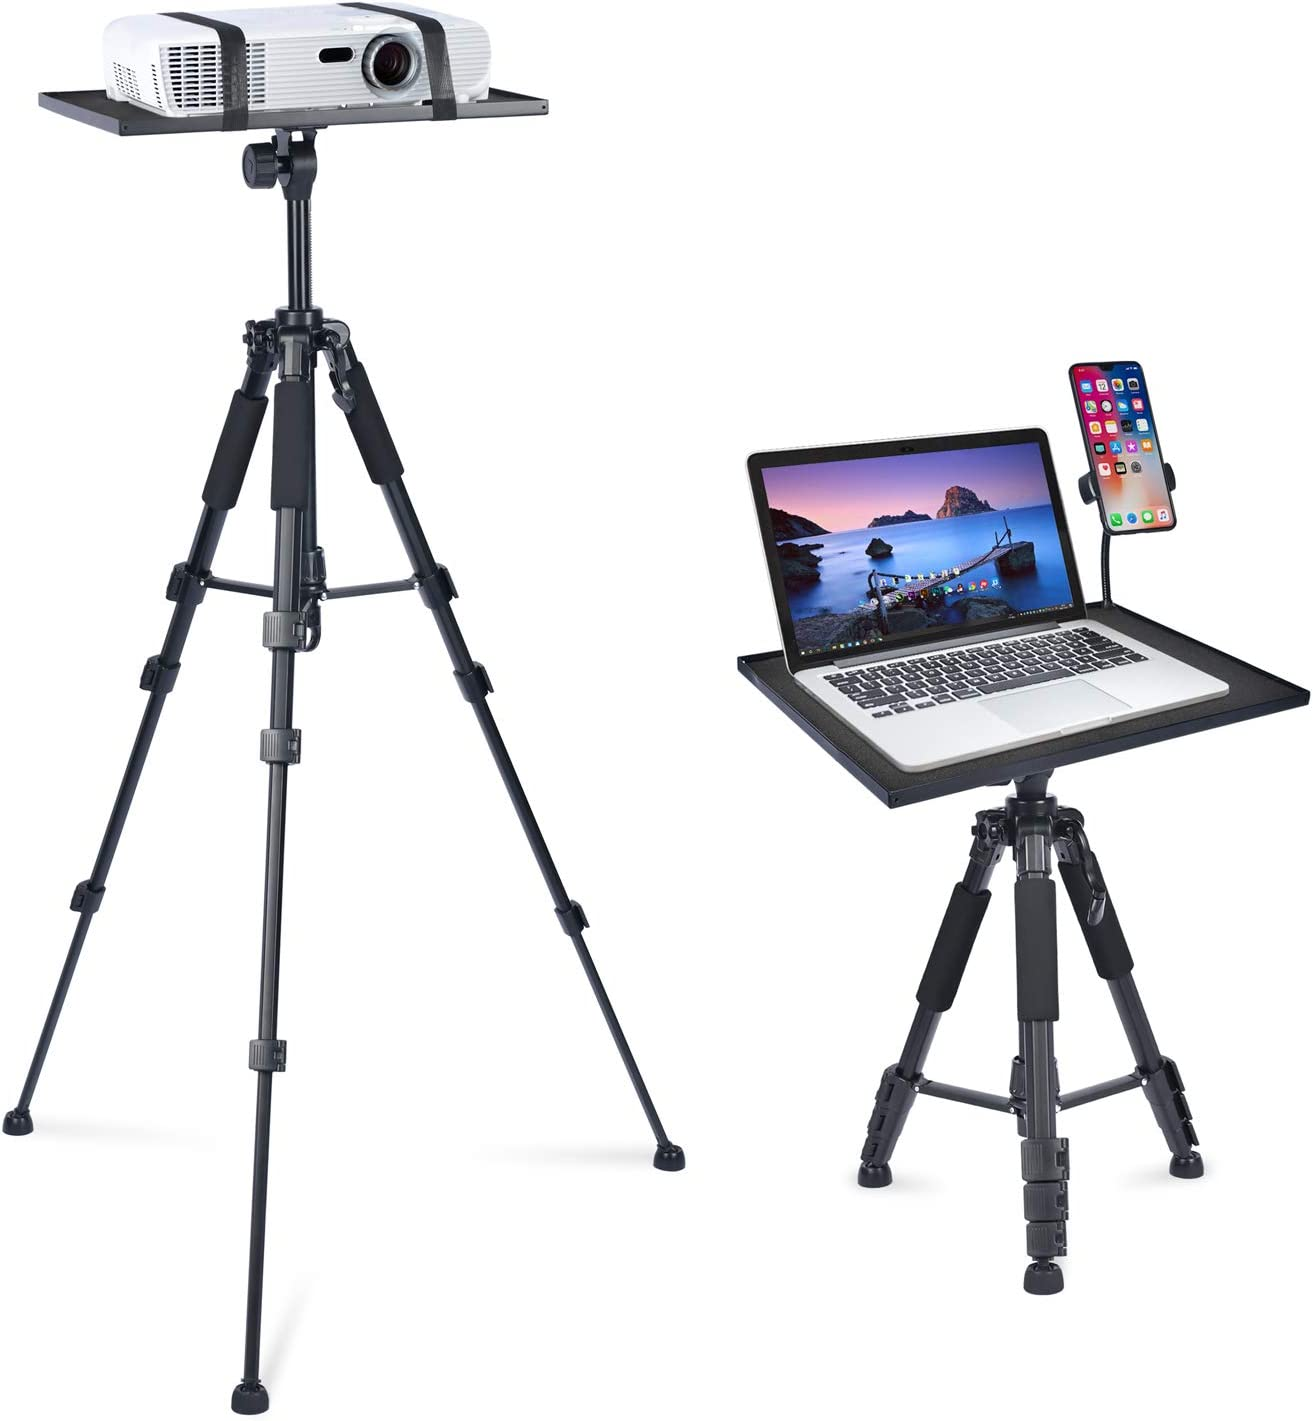 Projector Tripod Stand, Facilife Laptop Floor Stand, Projector Stand Adjustable Tall from 17.6 to 51.4 Inches, Laptop Tripod Stand for Projector, Laptop, DJ, Tablet